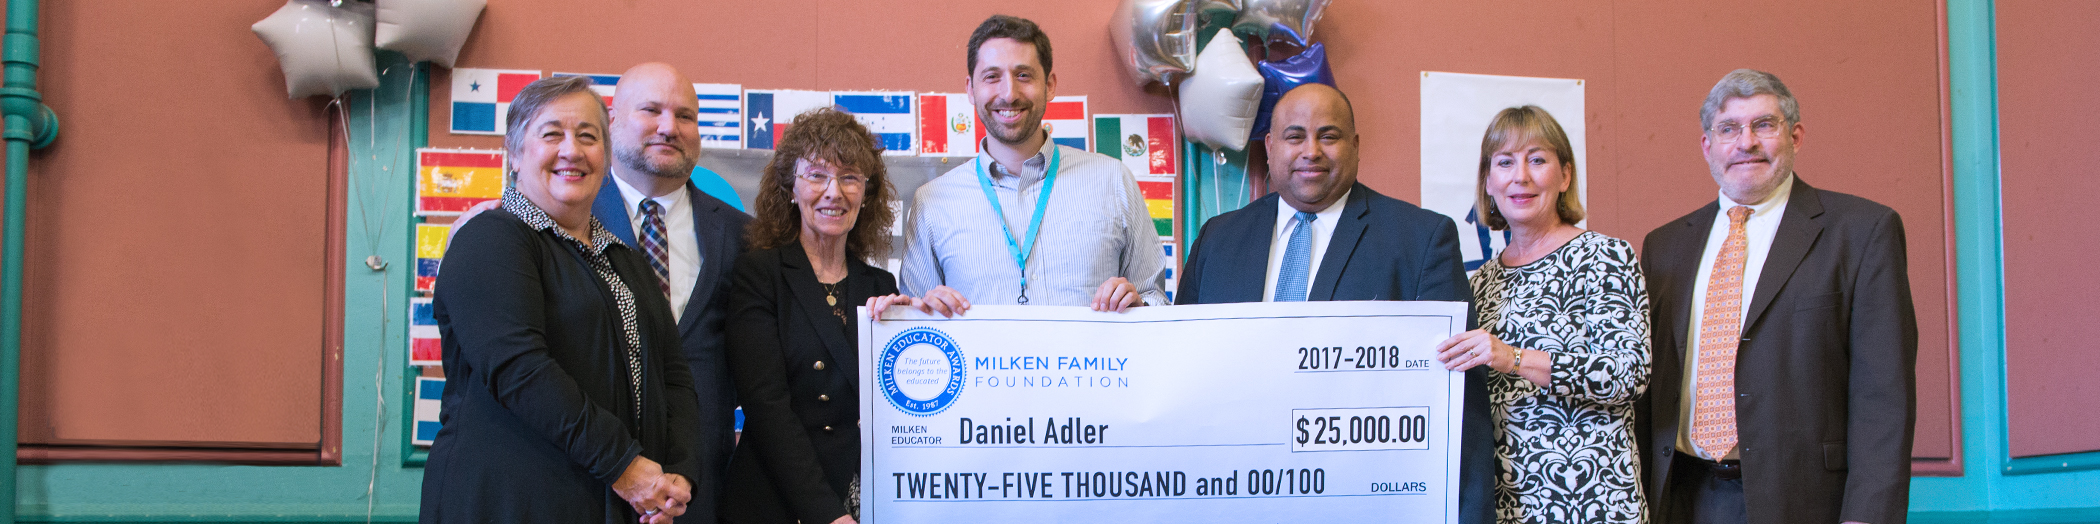 Group with Daniel Adler holding check